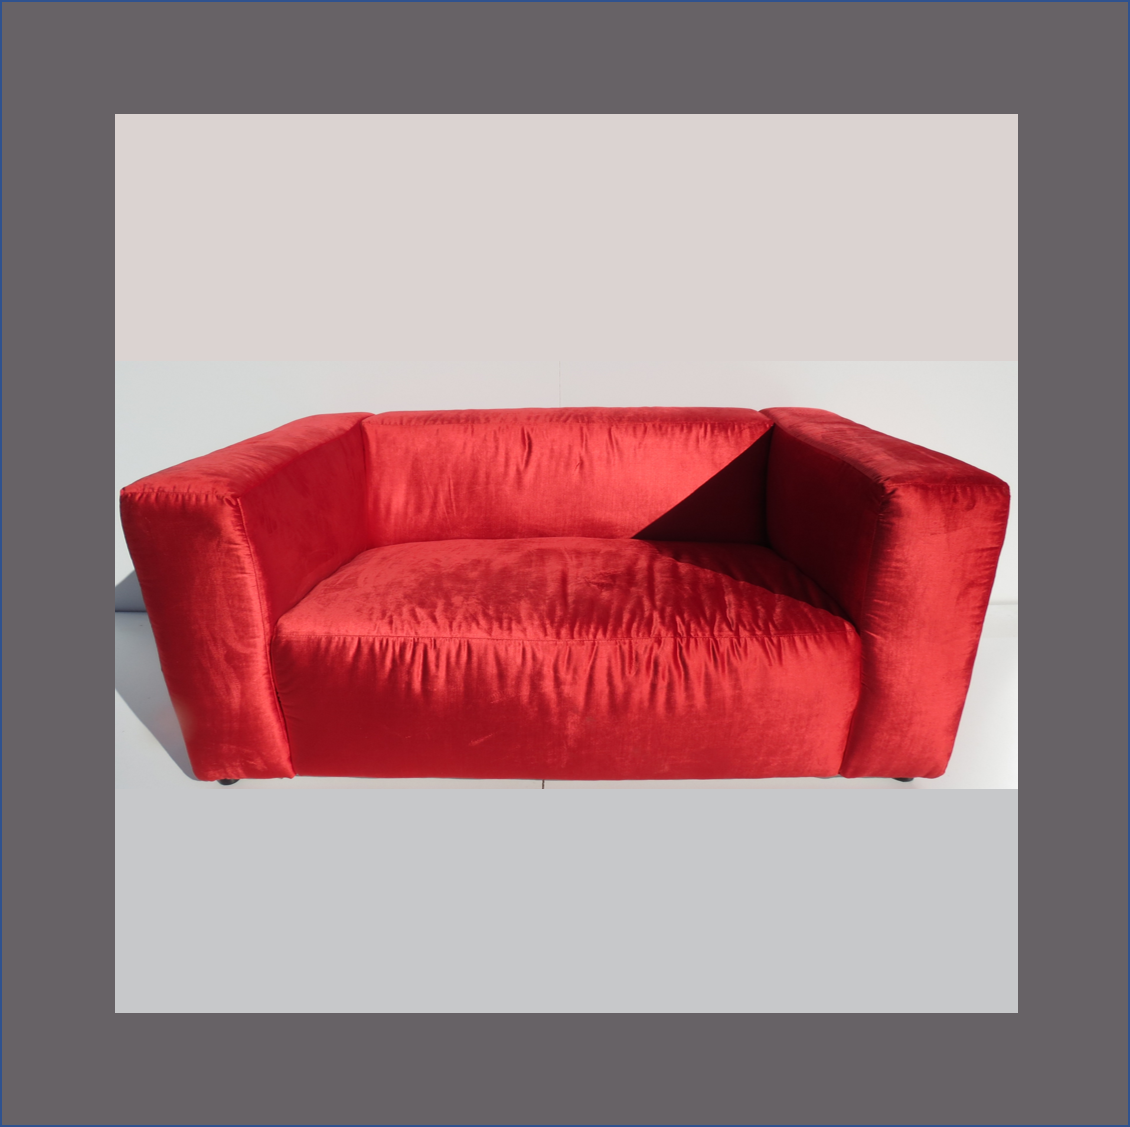 red-hippo-couch